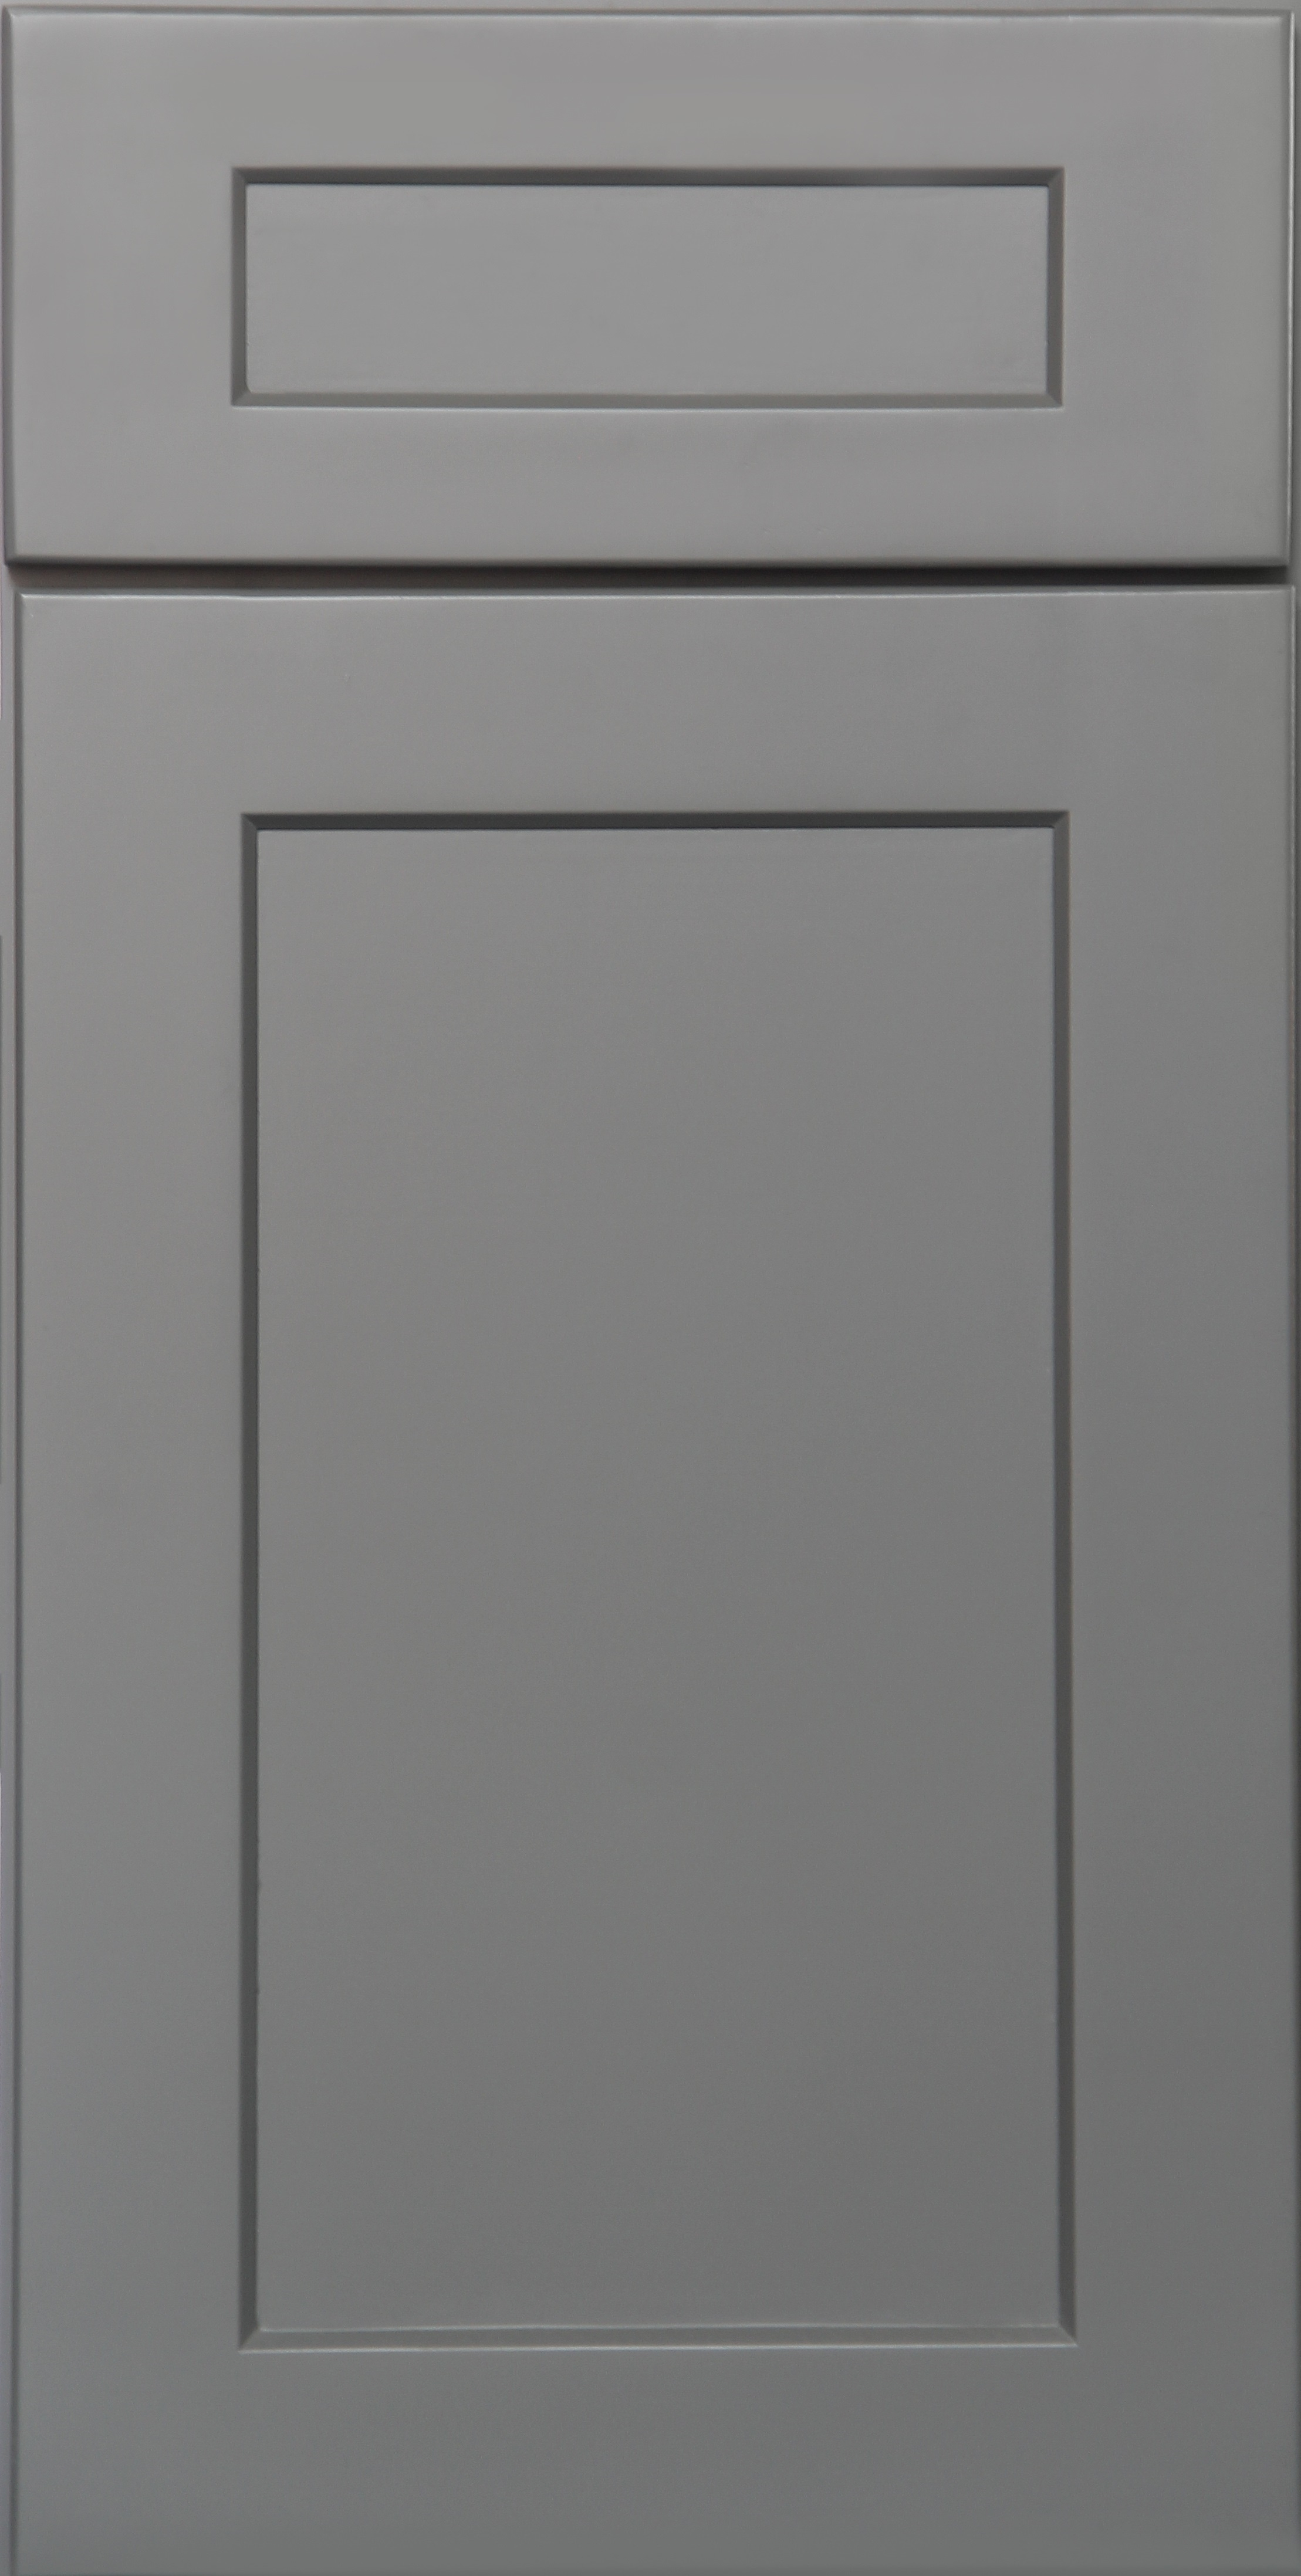 Kitchen Cabinets Shaker Doorsnew shaker door styles and finishes in stock ready to assemble